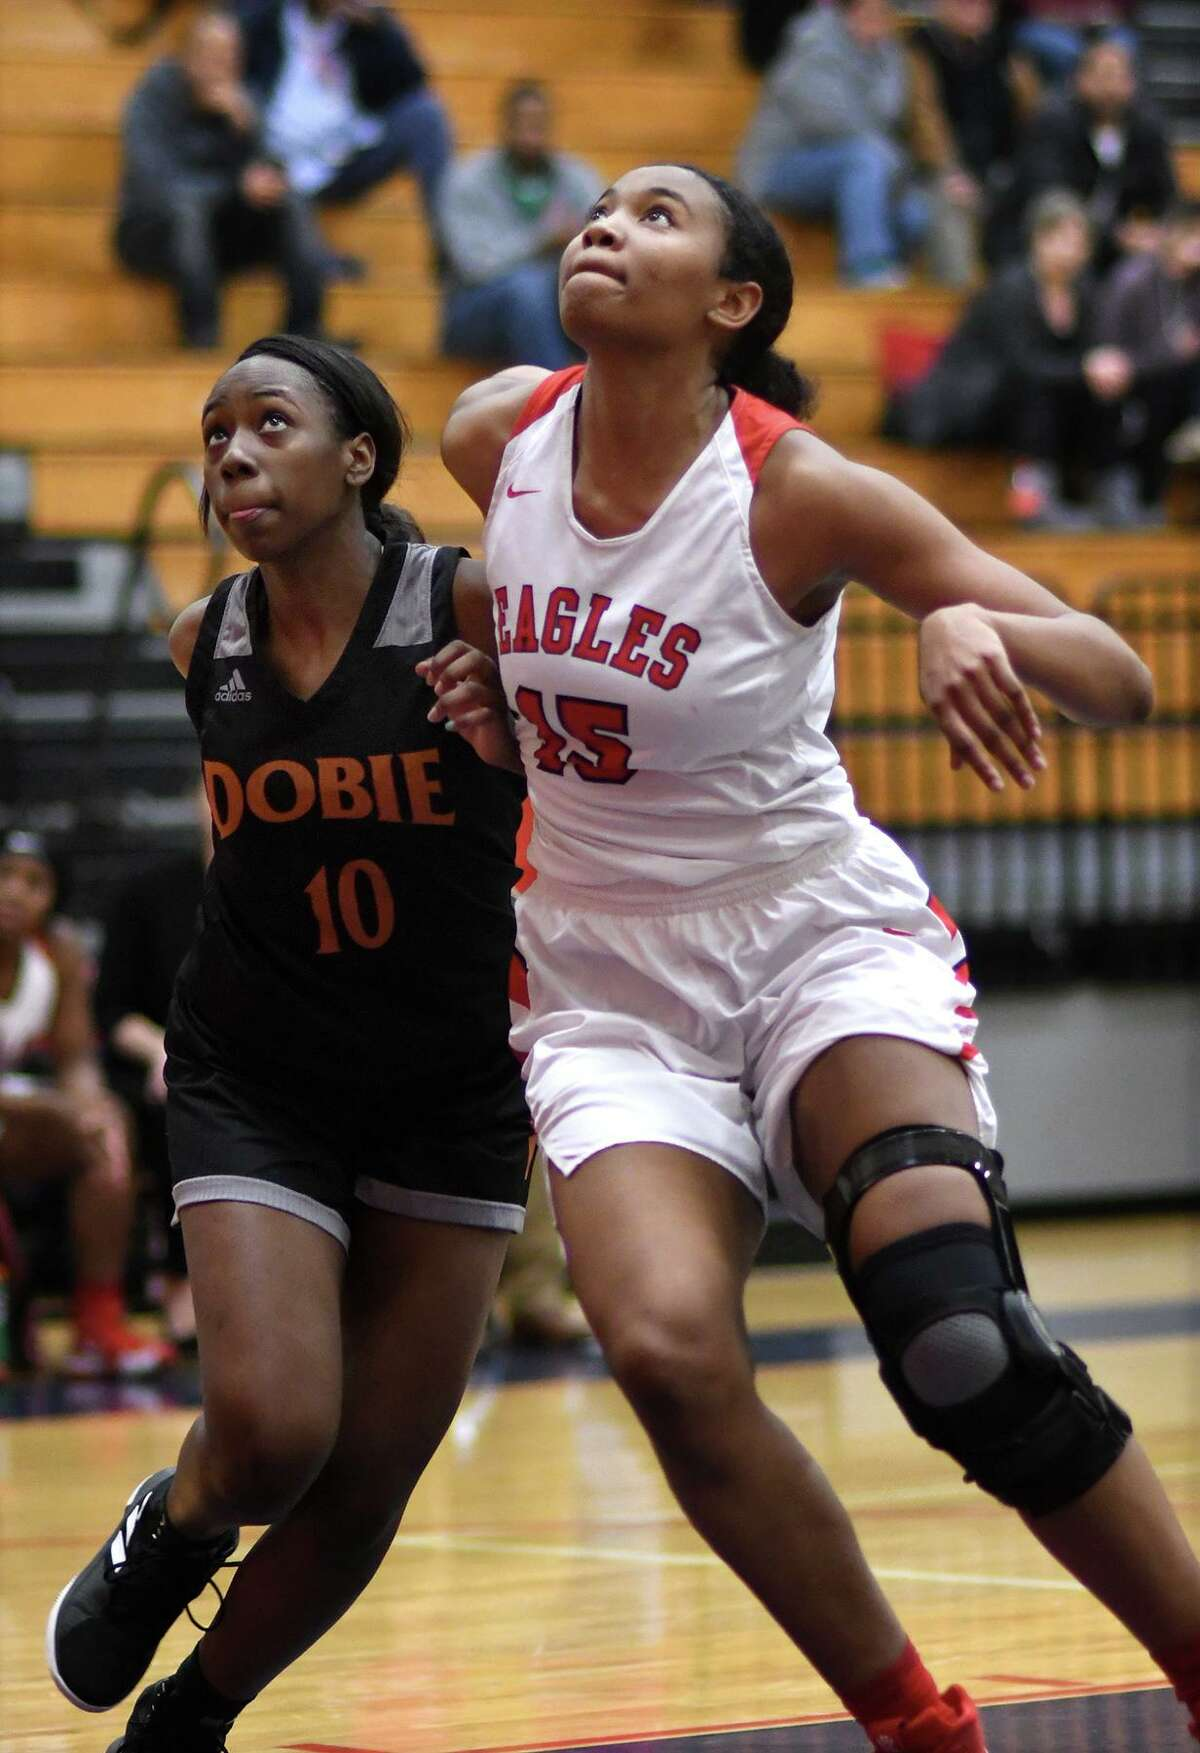 Atascocita Lady Eagle Elyssa Coleman (15) fights for rebound position against Dobie's Madison Garrett (10) during their District 22-6A matchup at Atascocita High School on Jan. 25, 2019.